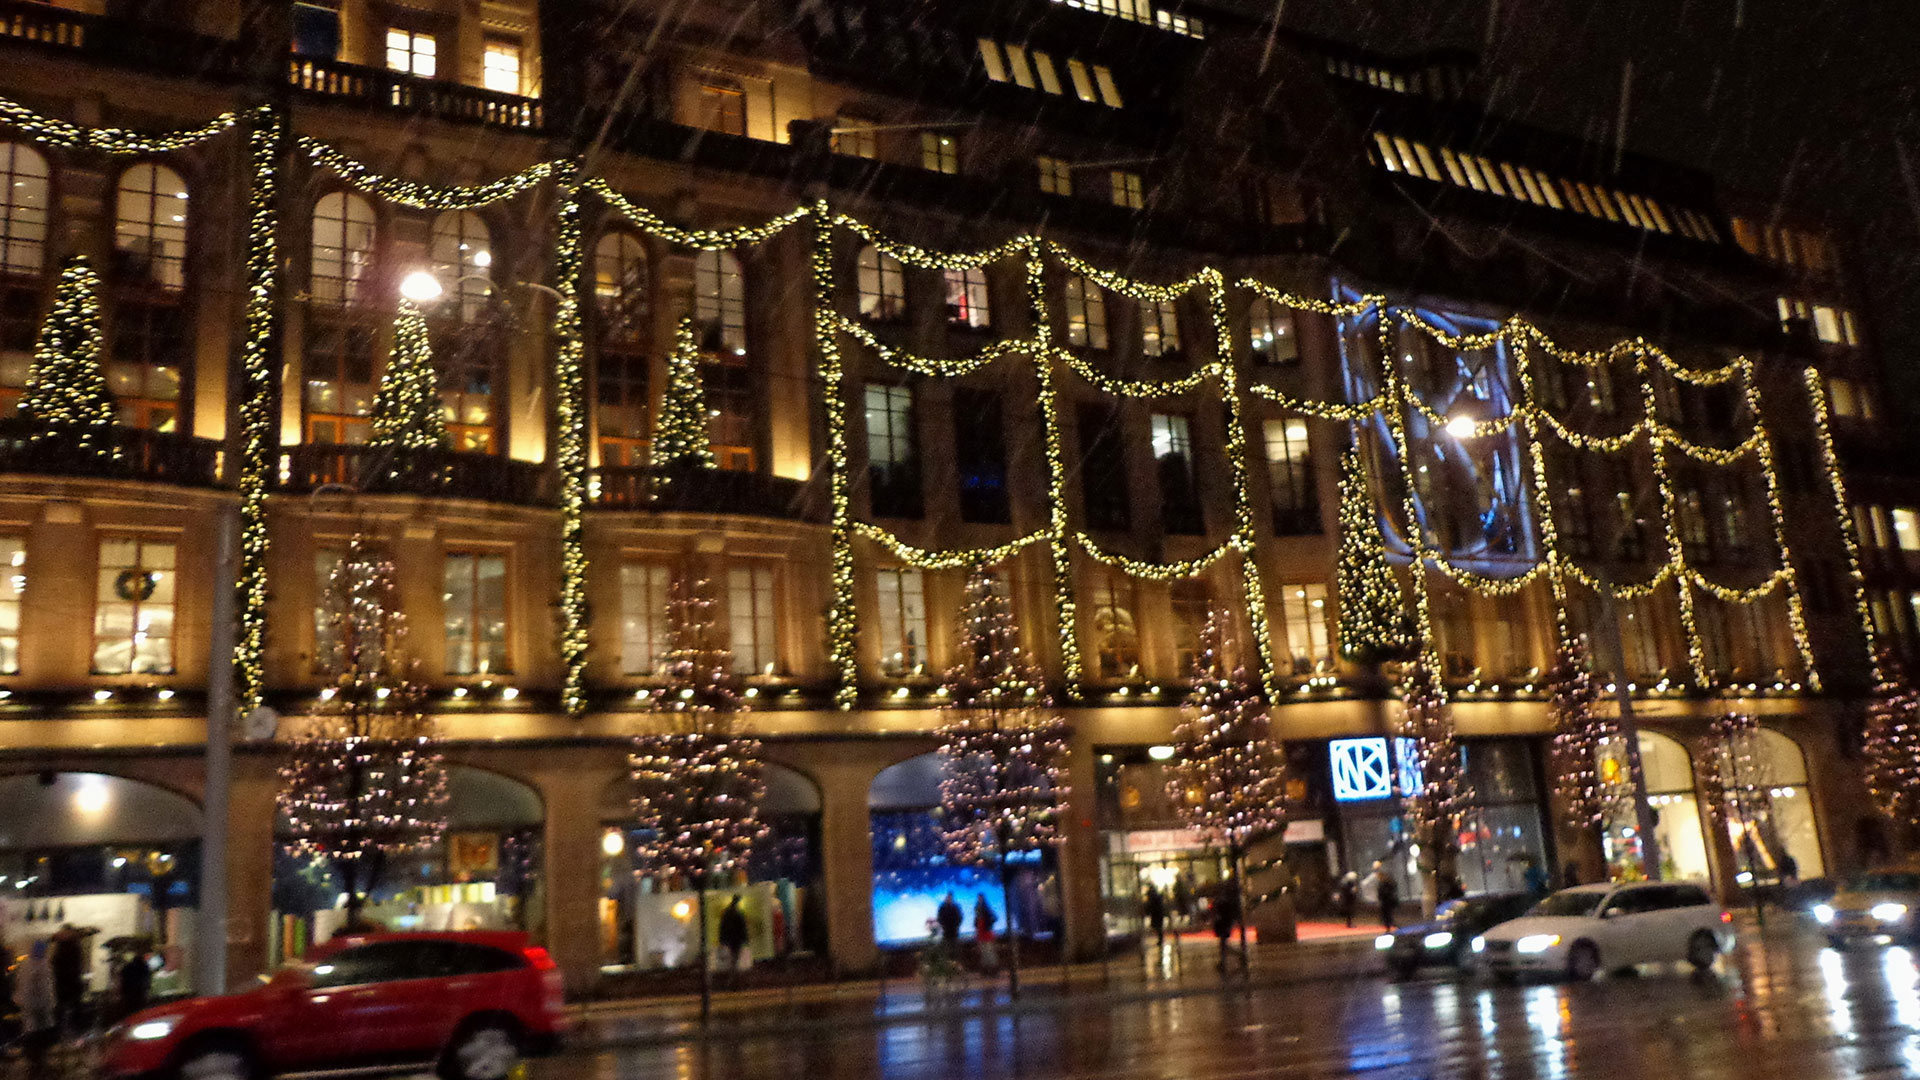 Festive Lights to Brighten the Swedish Winter